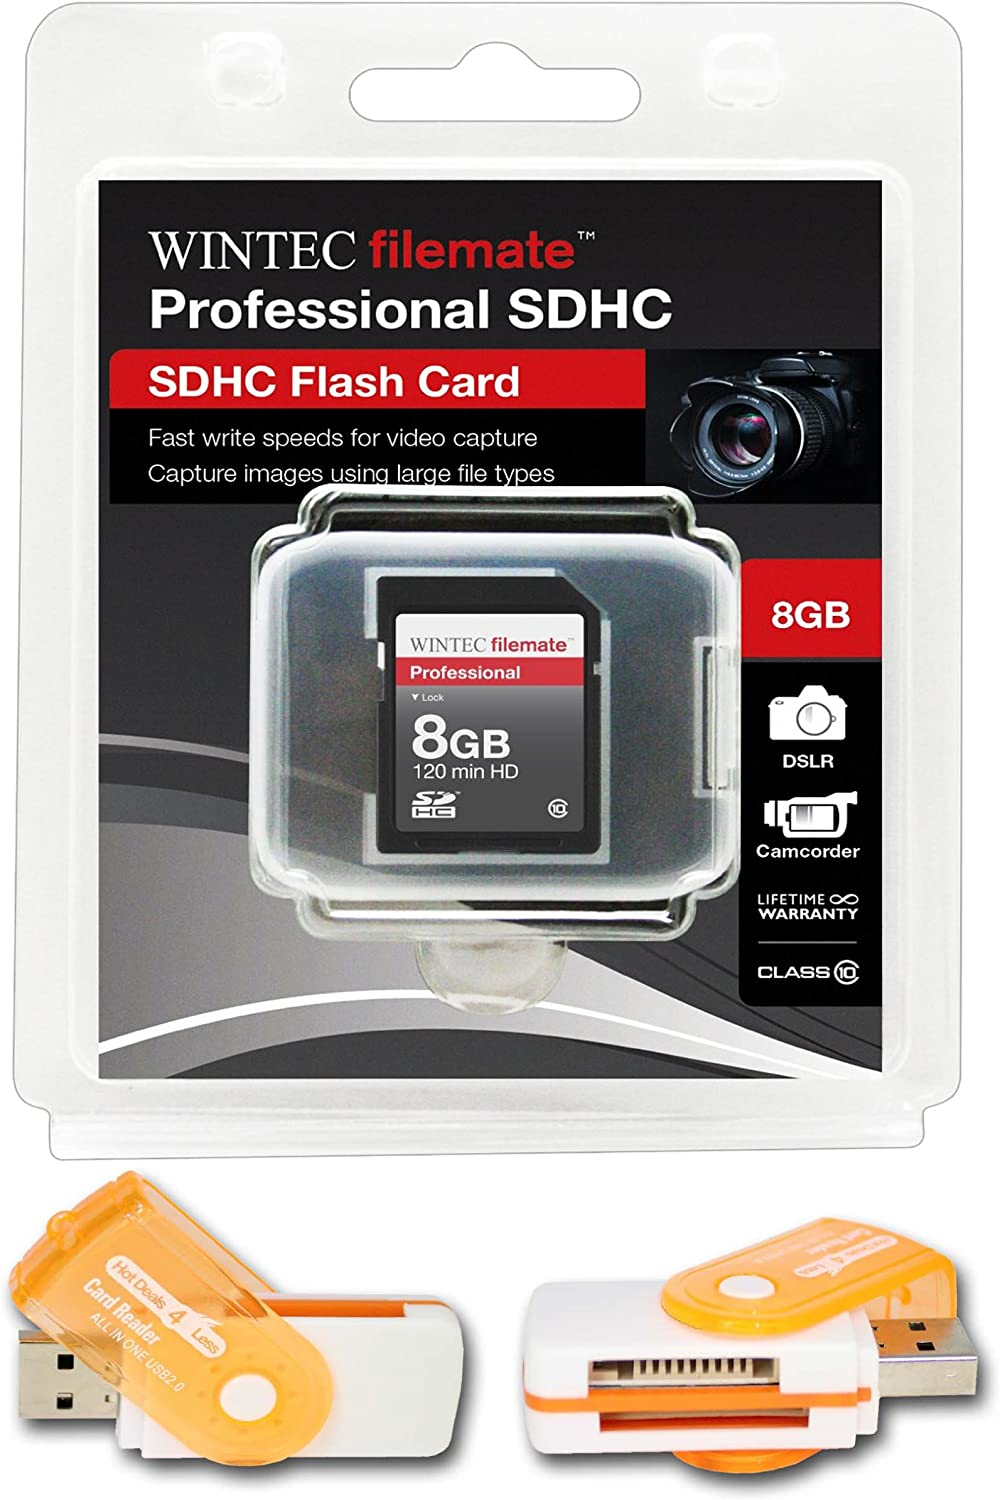 8GB Class 10 SDHC High Speed Memory Card For FUJI FinePix S5700 S5800 S700 S800. Perfect for high-speed continuous shooting and filming in HD. Comes with Hot Deals 4 Less All In One Swivel USB card reader and.